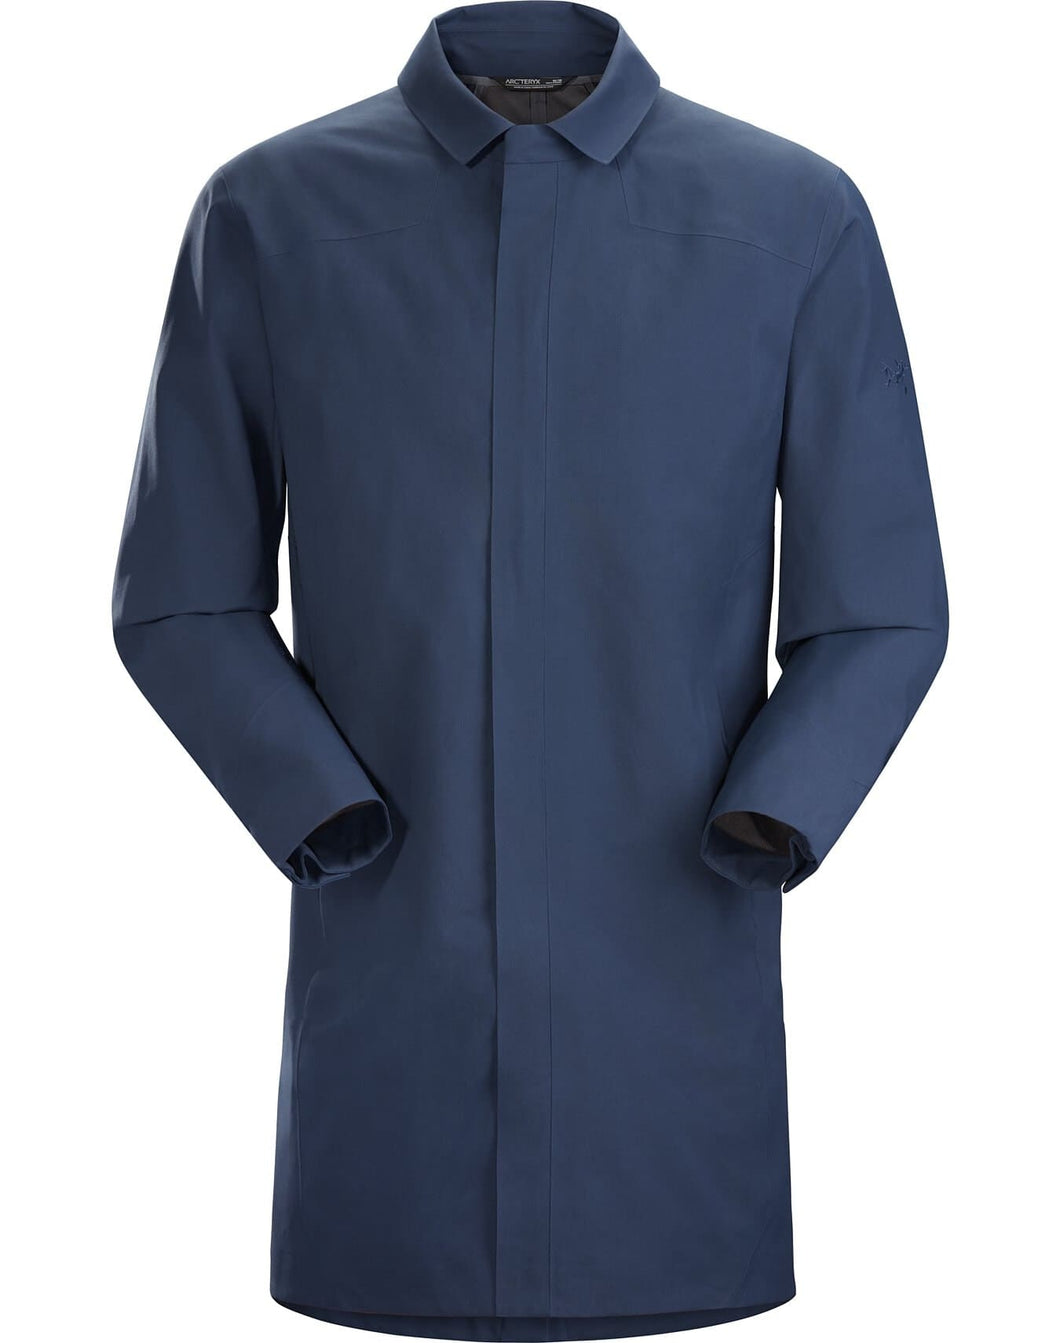 Keppel Trench Coat Men's